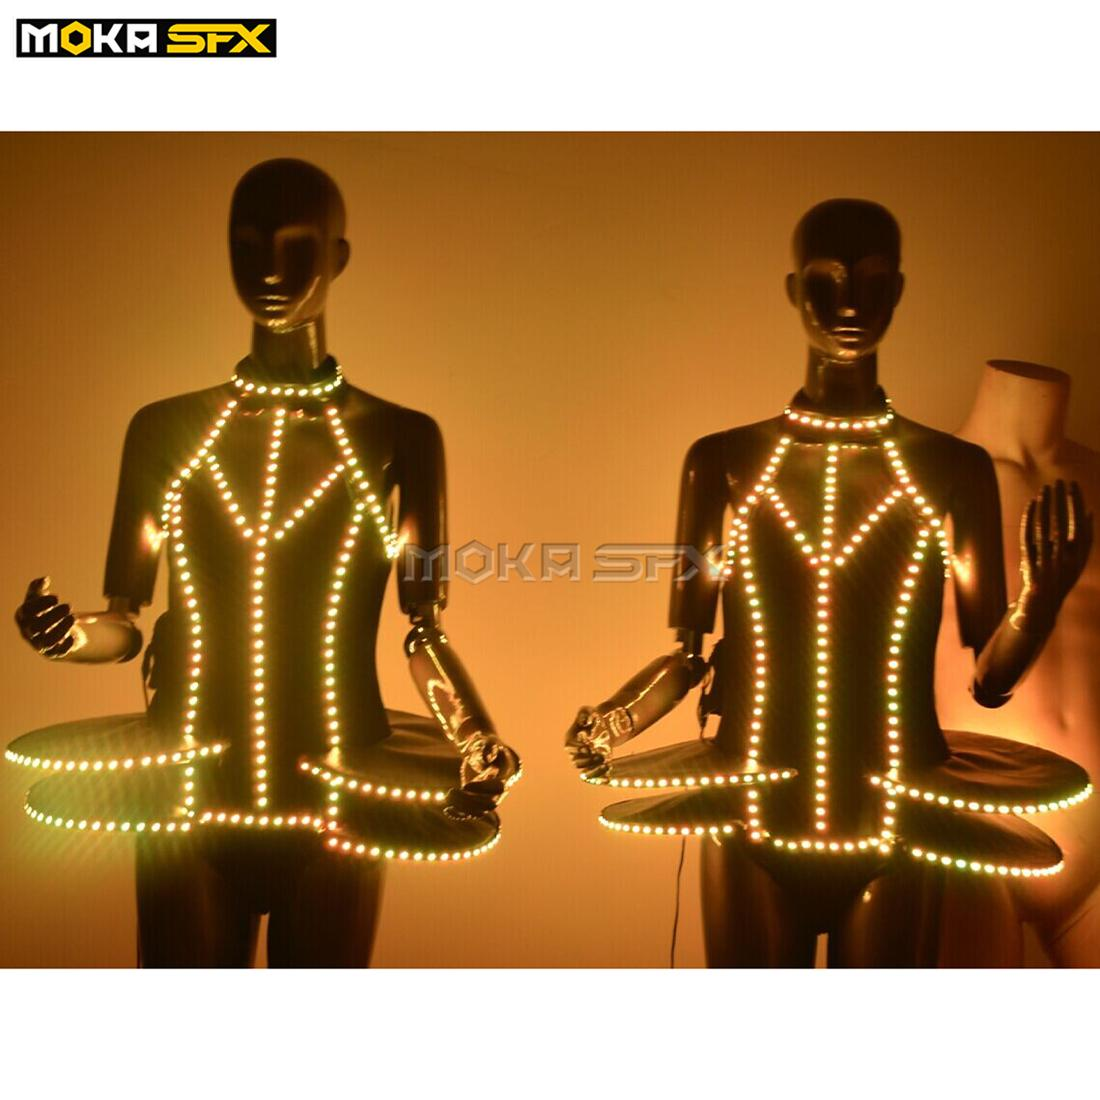 Party Funny Dress Up LED Lights Elements BColorful Party Supplies  Luminous 3PC